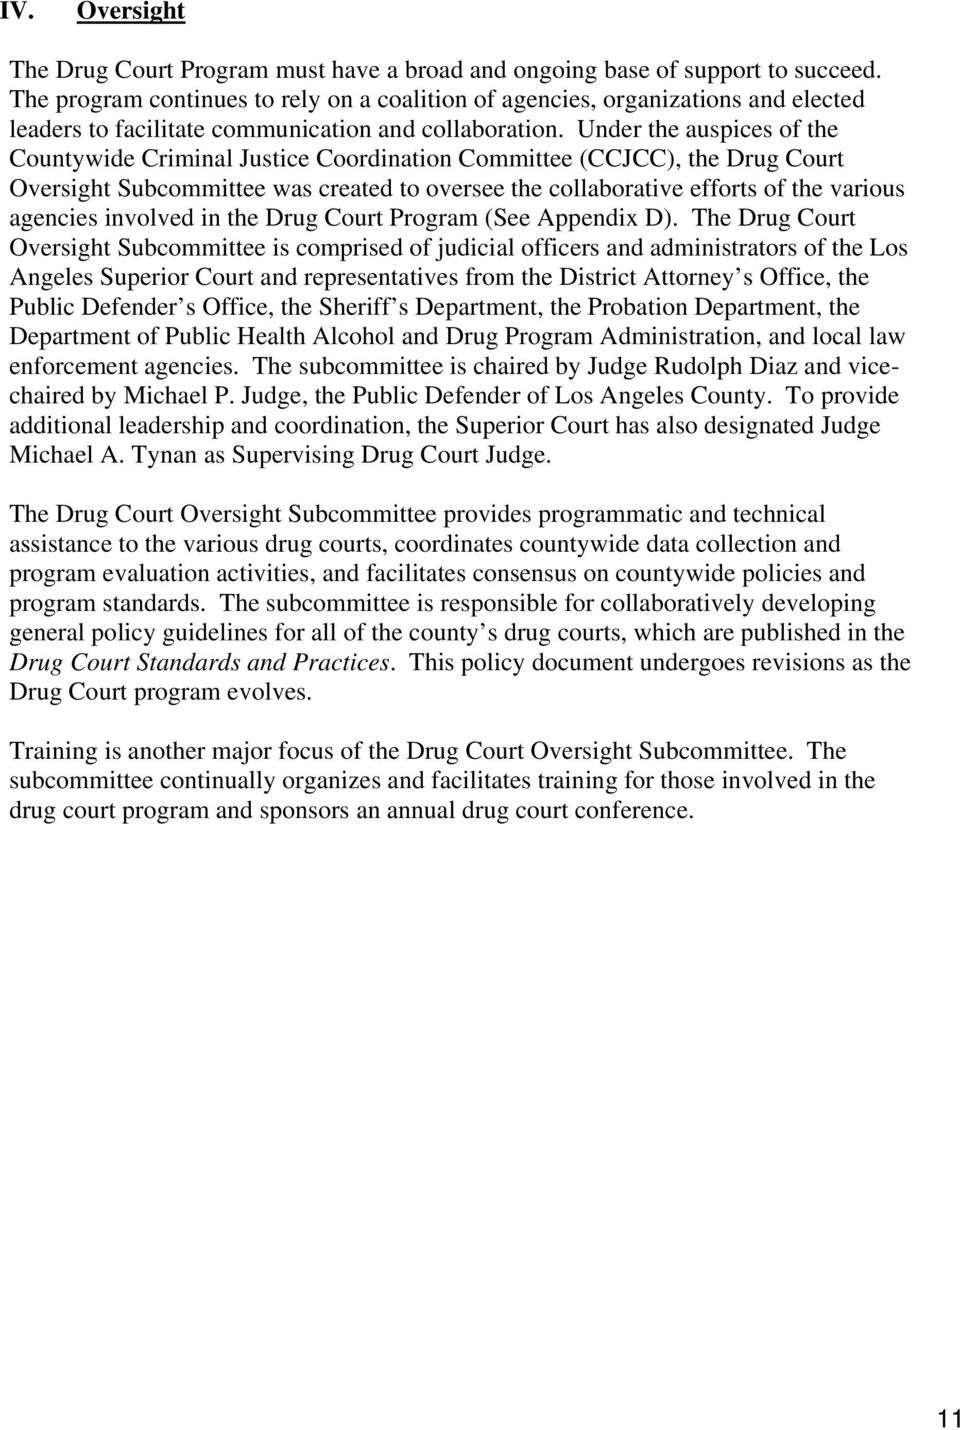 Under the auspices of the Countywide Criminal Justice Coordination Committee (CCJCC), the Drug Court Oversight Subcommittee was created to oversee the collaborative efforts of the various agencies